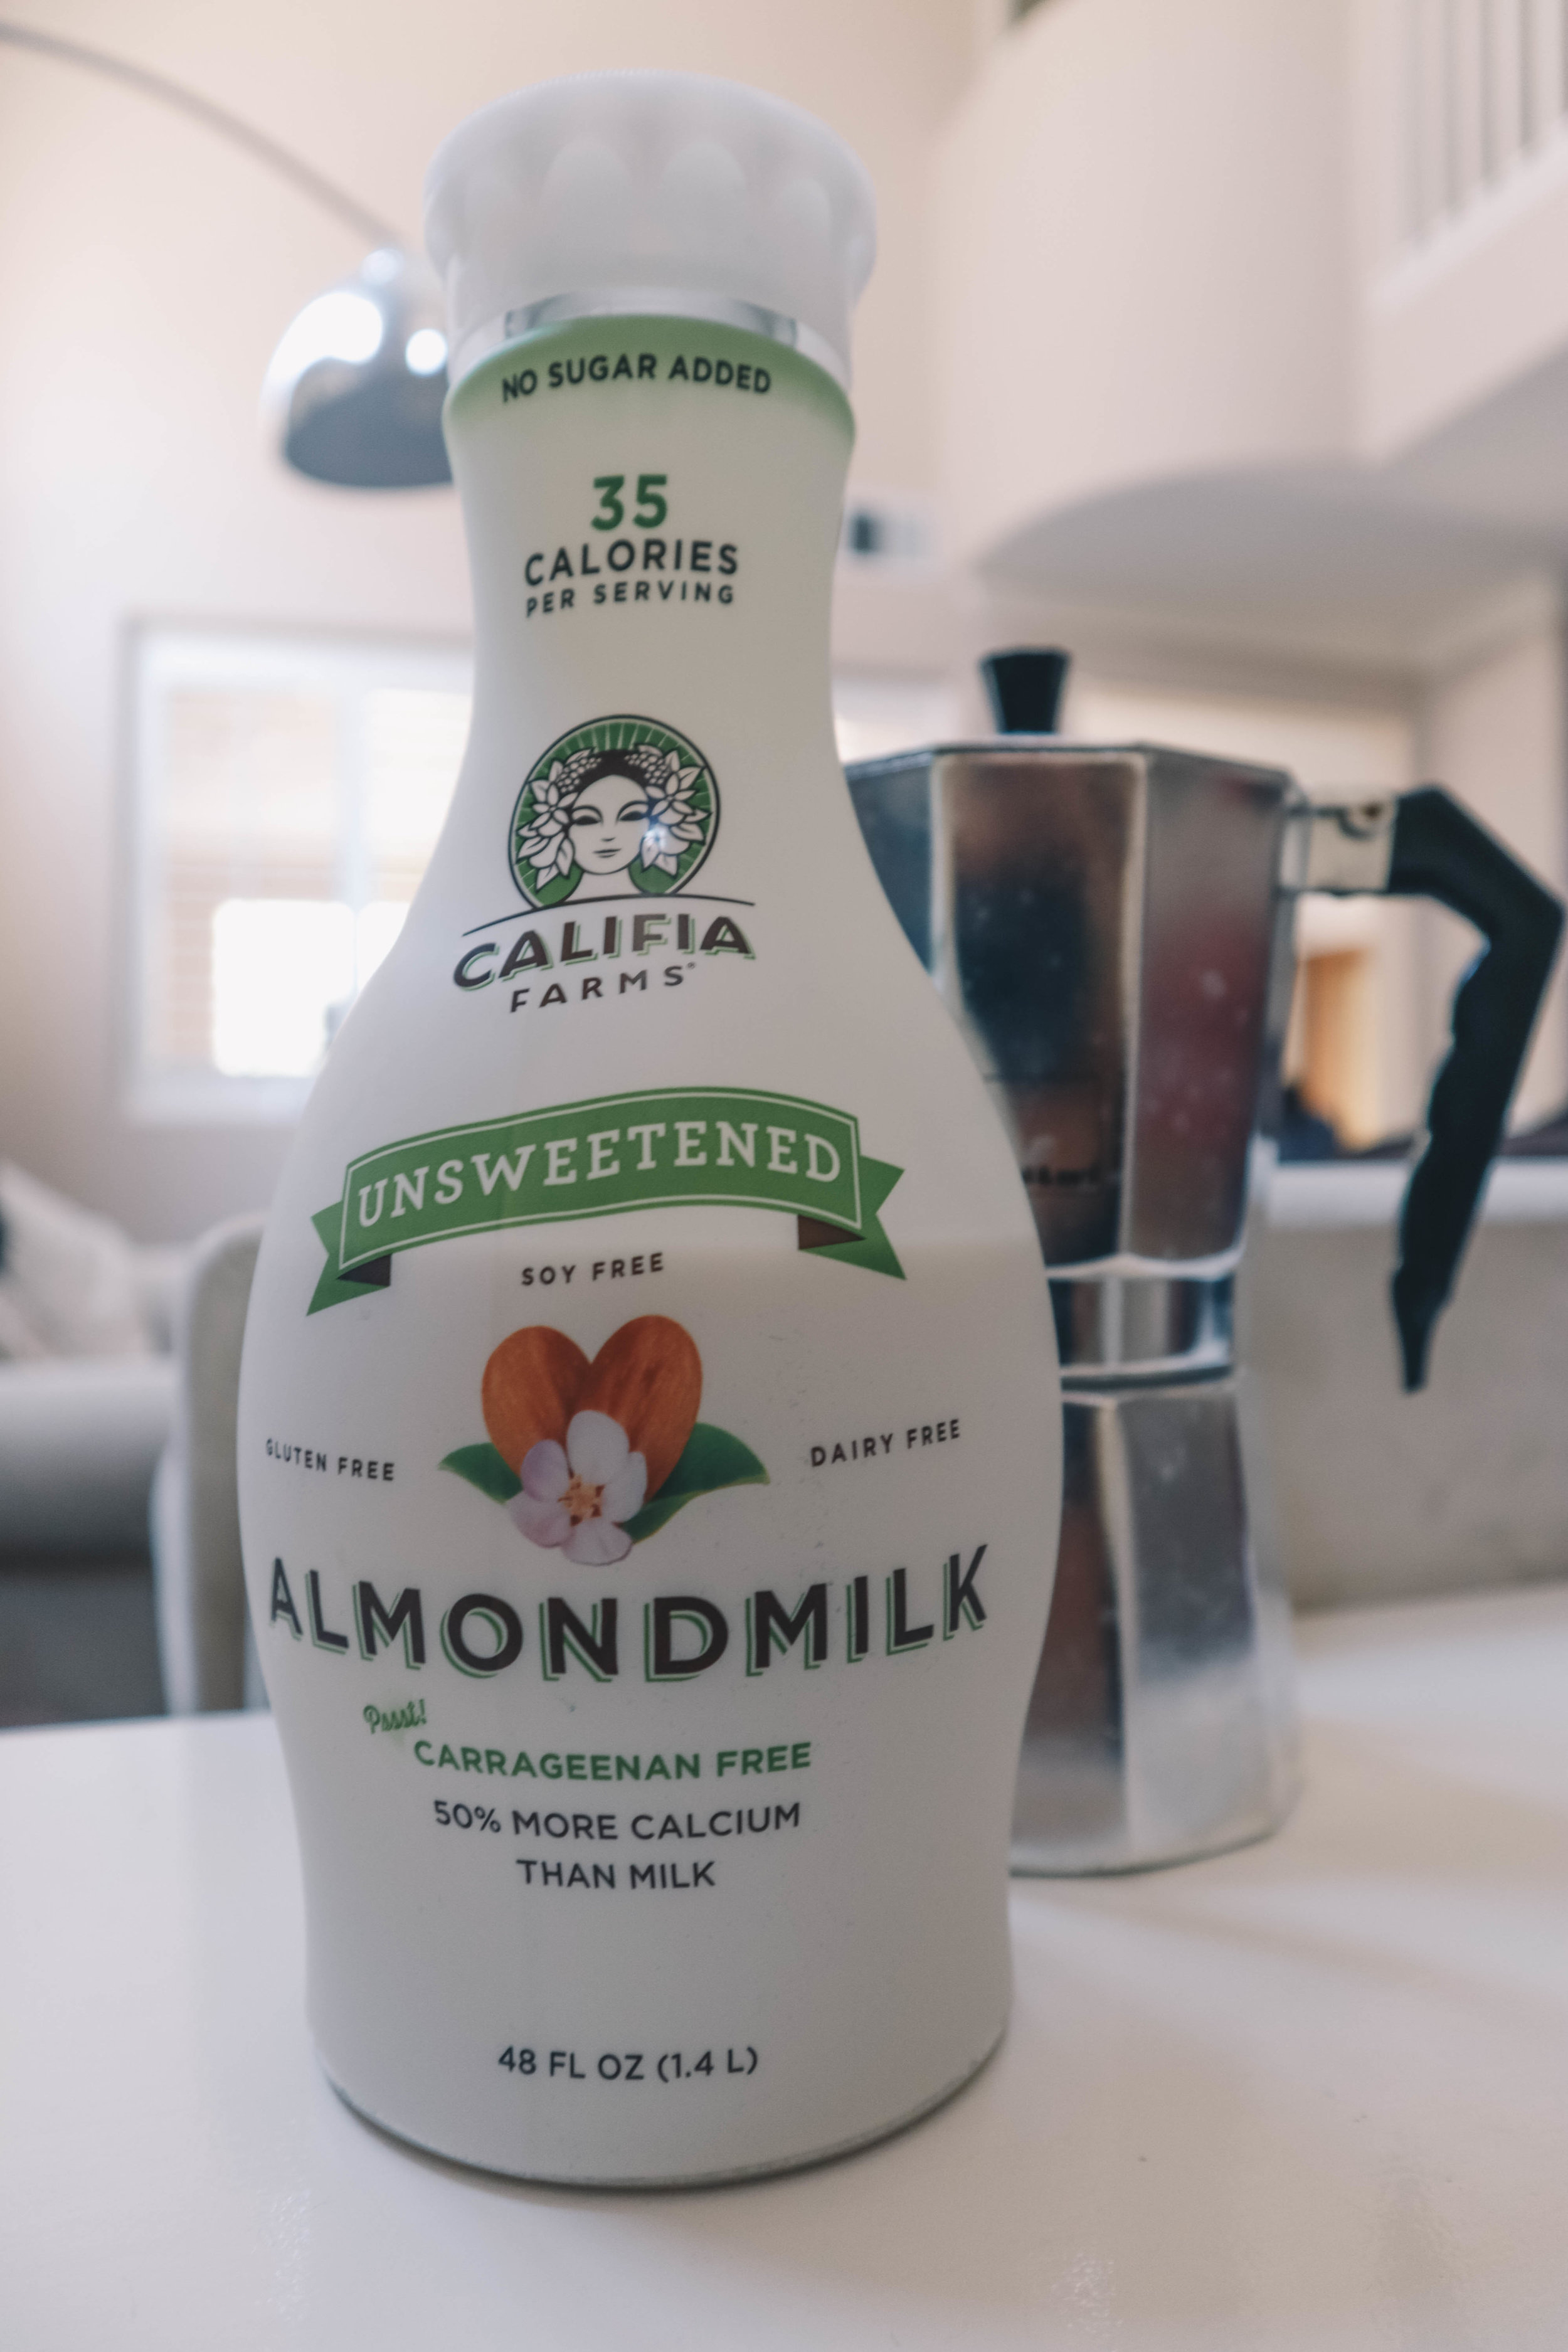 Califia Farms Almond Milk - I am verylactose intolerant. This almond milk is unsweetened, preservative and carrageenan free, locally produced in Southern California, and is incredibly delicious! Also, it was on sale for 2 for $5 at Vons. How could I say no?